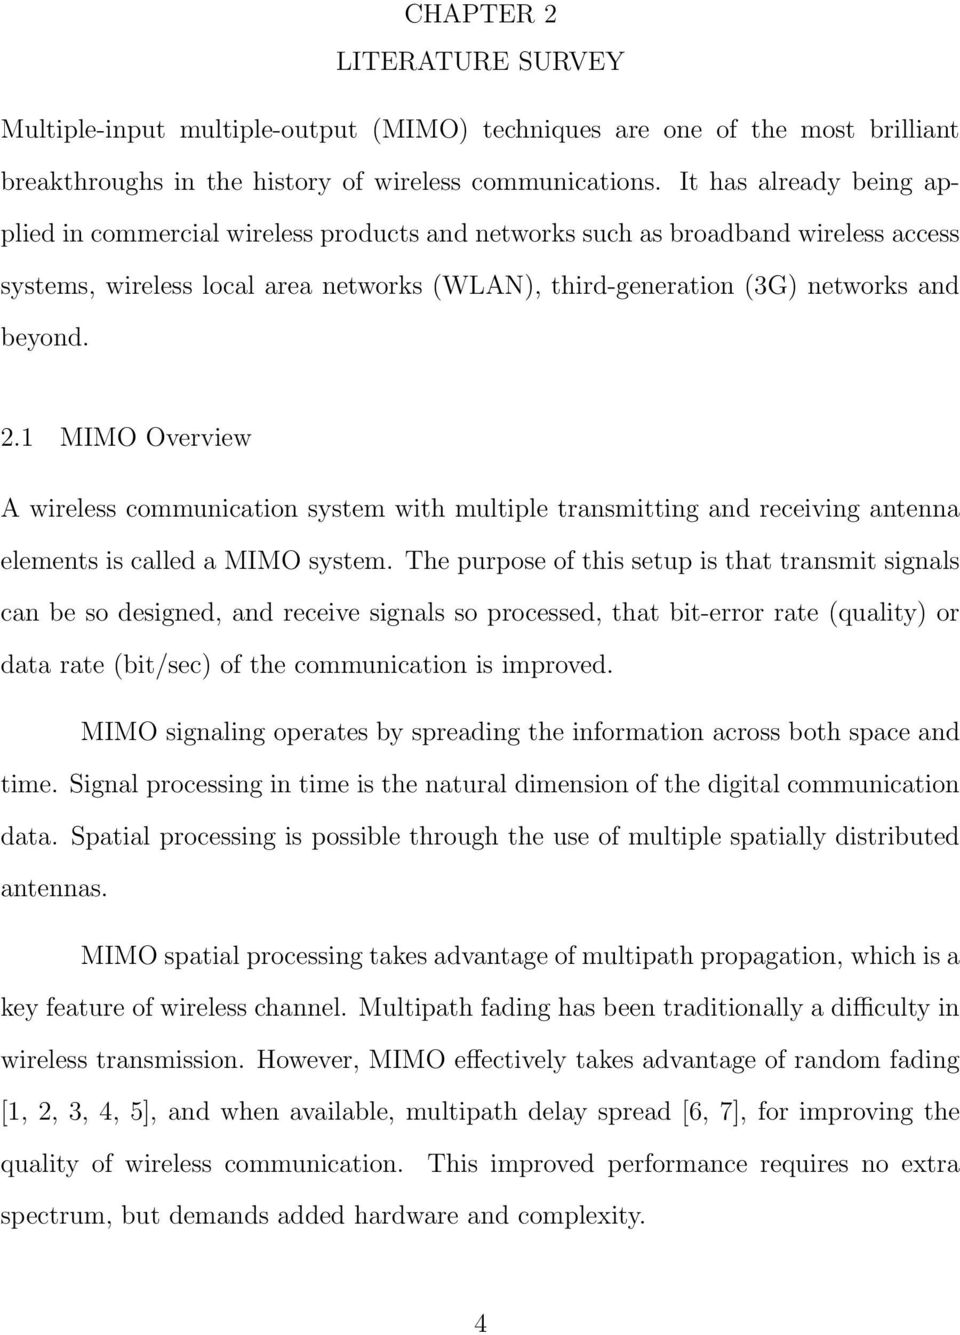 1 MIMO Overview A wireless communication system with multiple transmitting and receiving antenna elements is called a MIMO system.